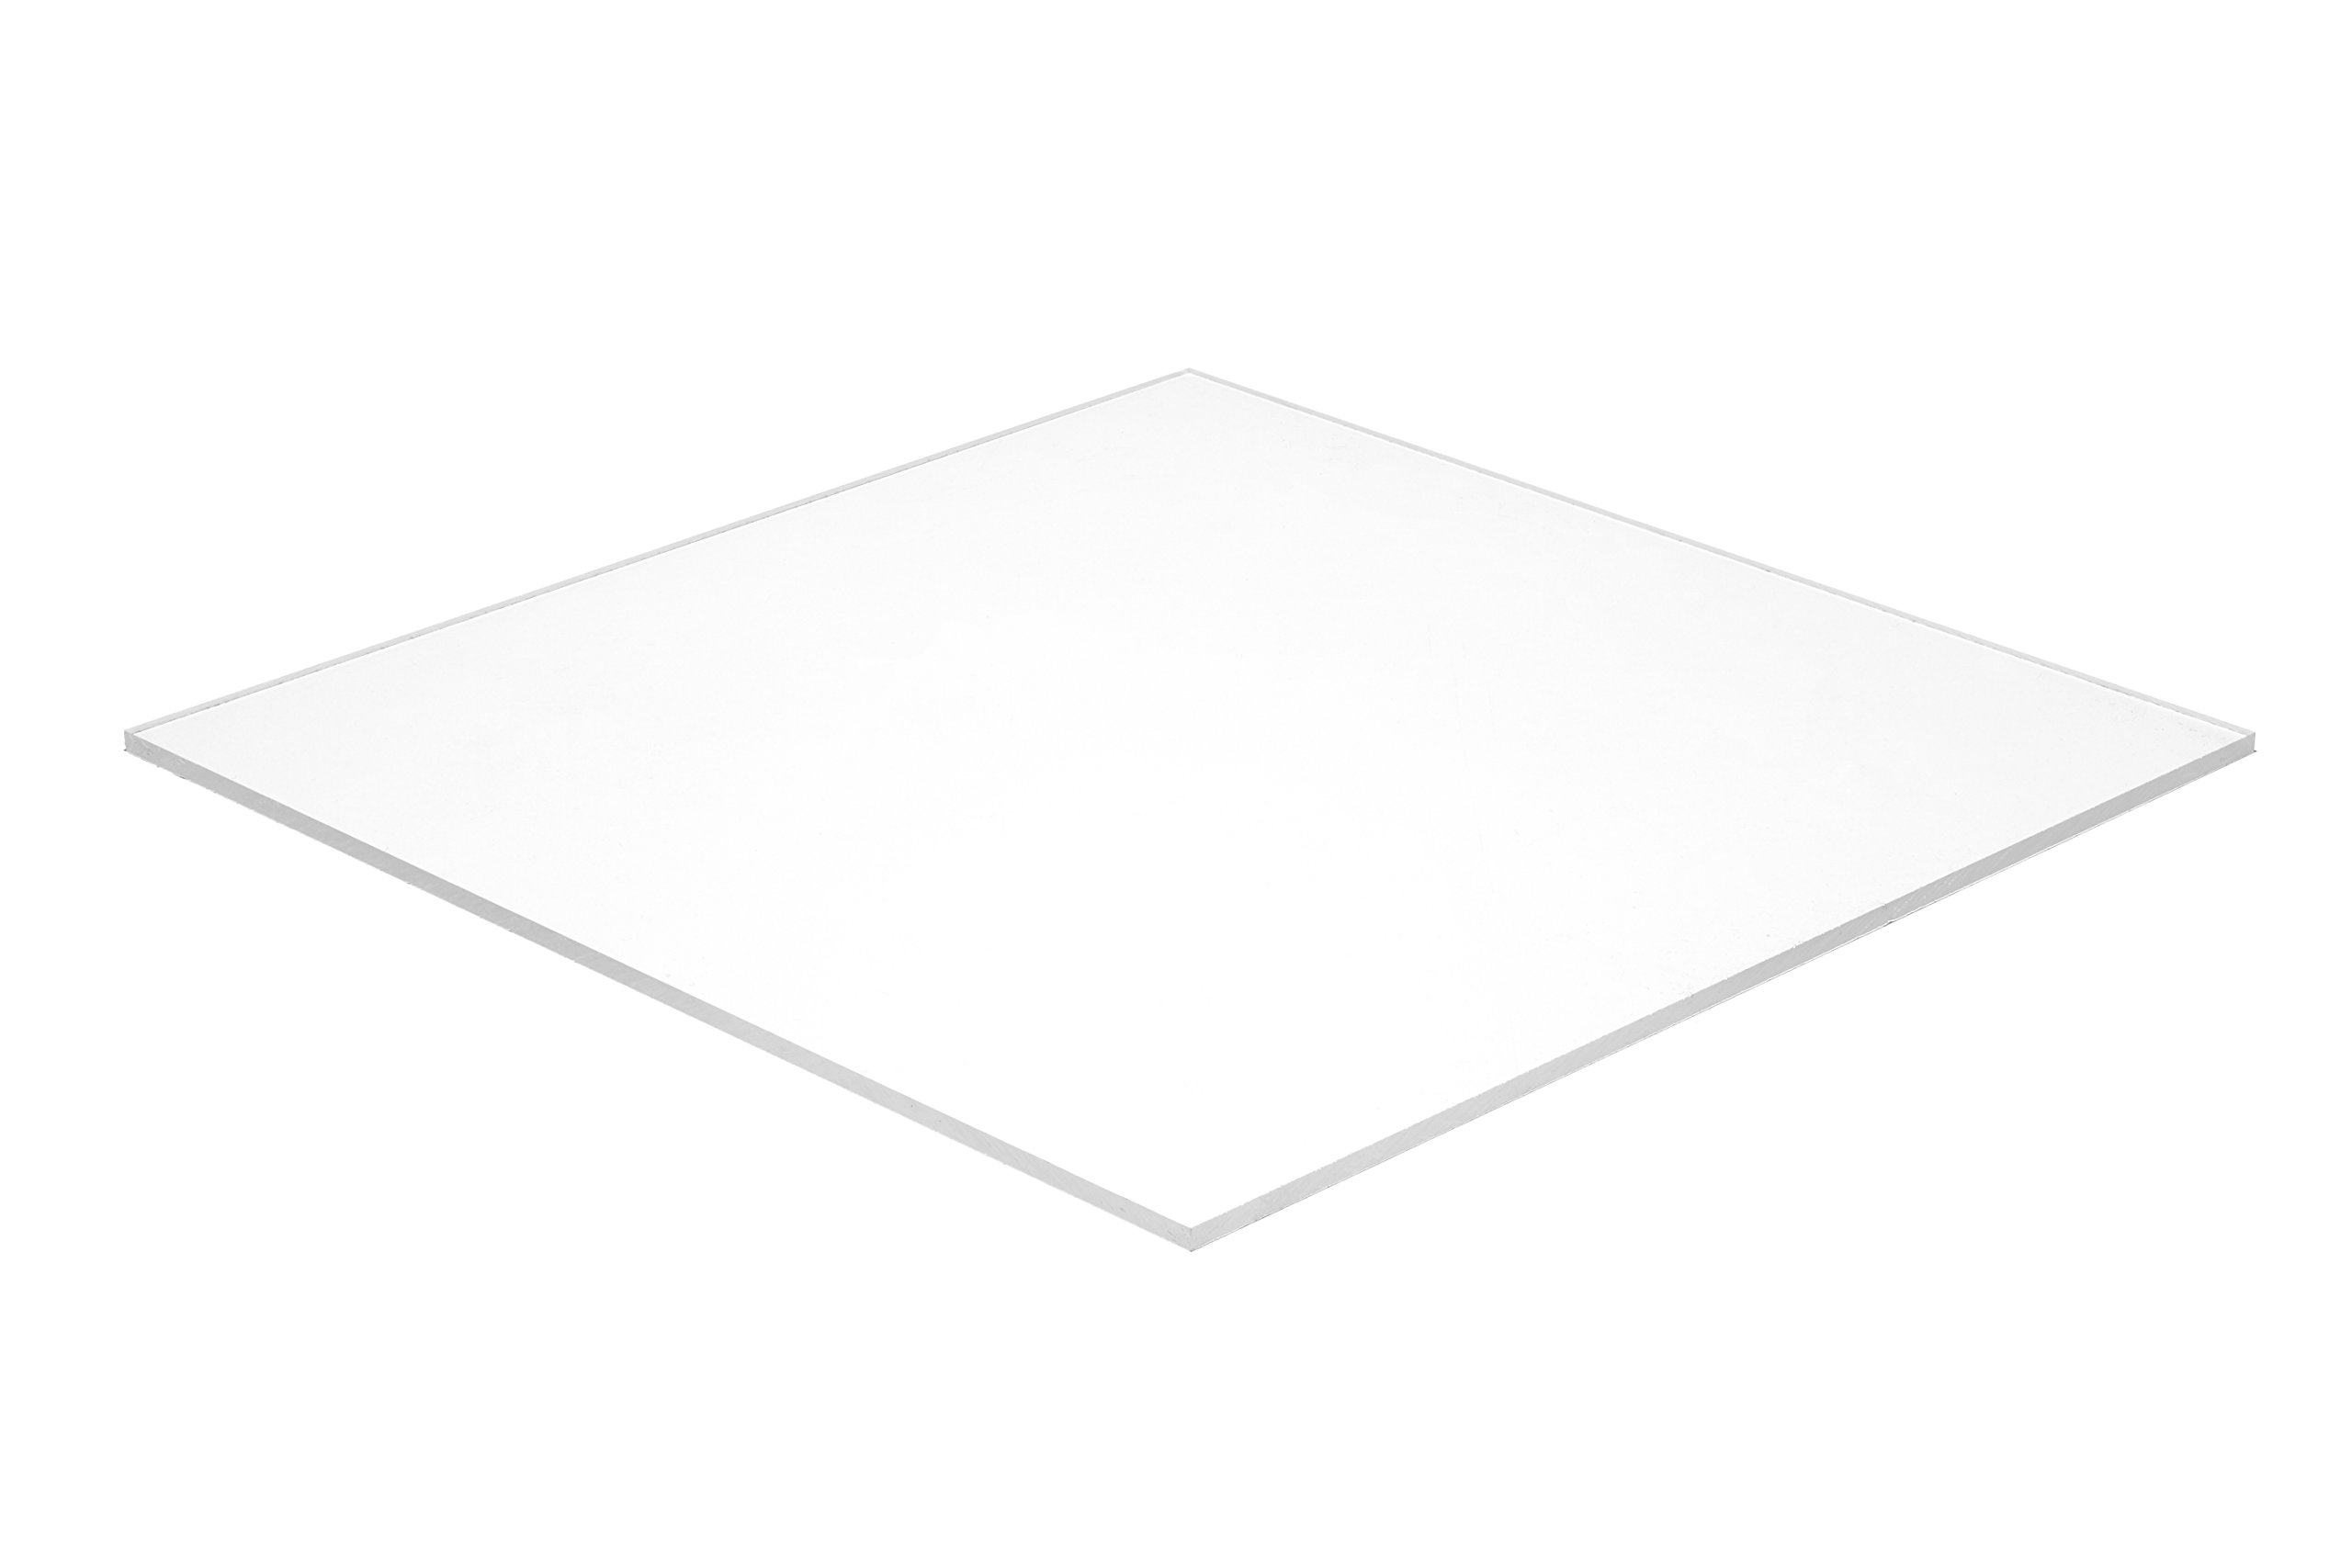 Falken Design WT2447-1-8/1224 Acrylic White Sheet, Translucent 55%, 12'' x 24'', 1/8'' Thick